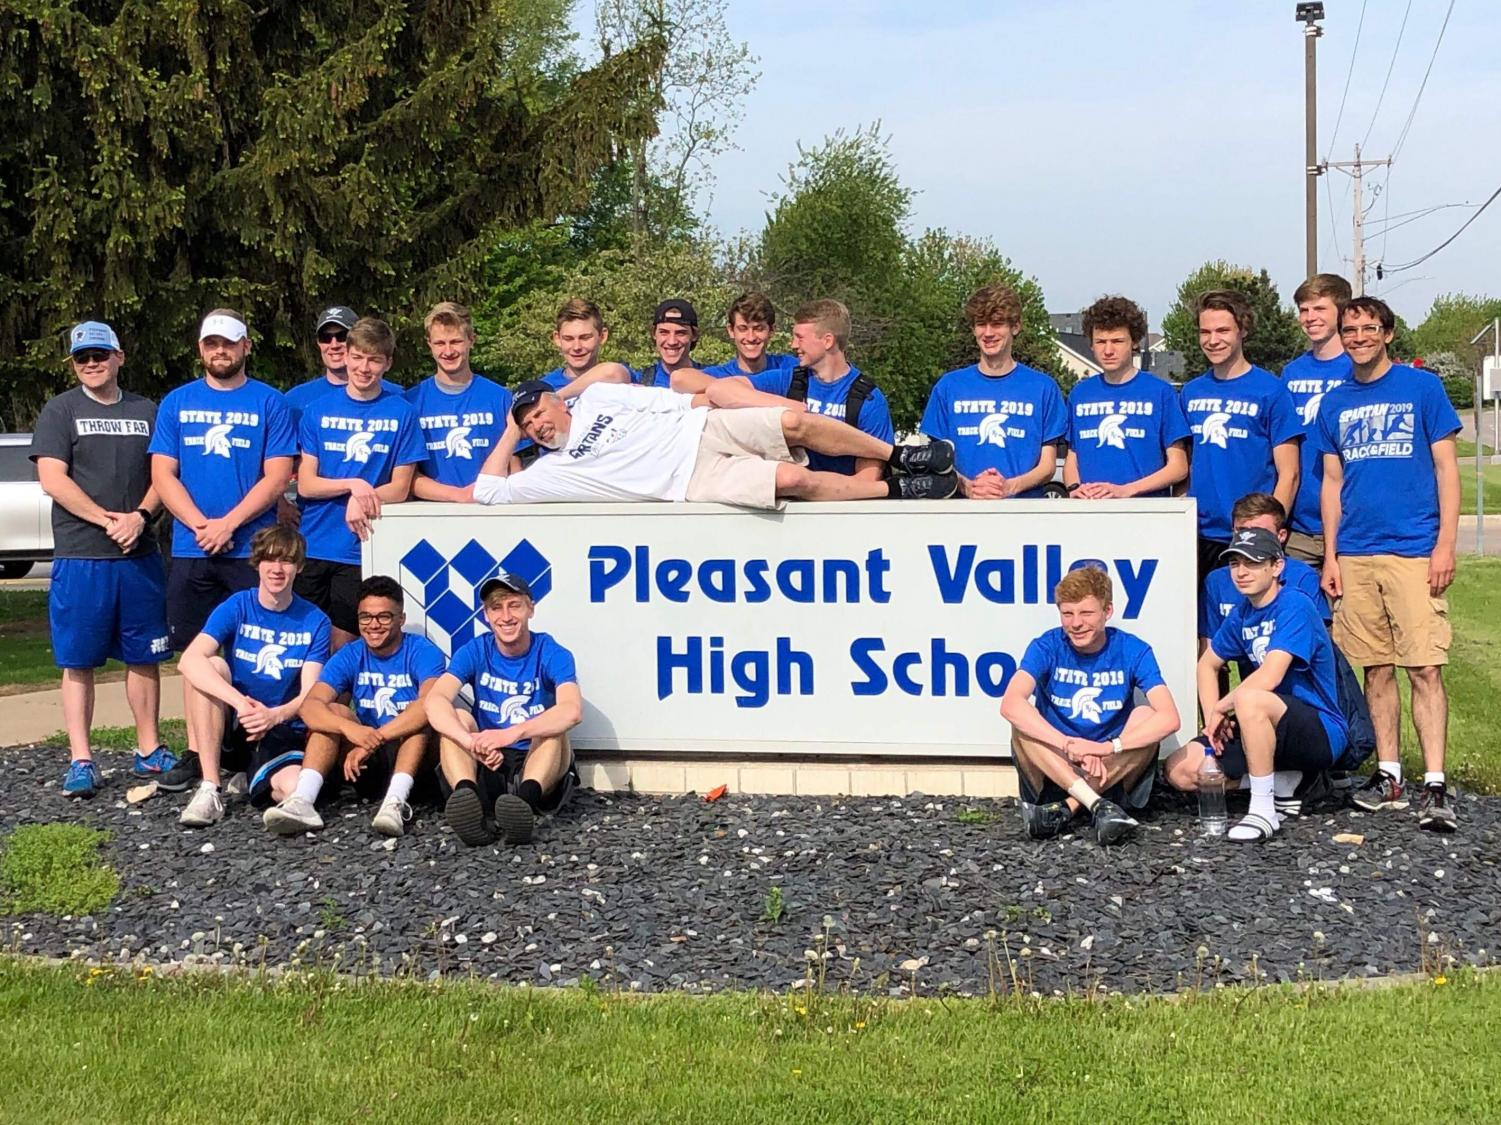 The boys' track and field team gathered around the PVHS sign prior to leaving for the state meet.